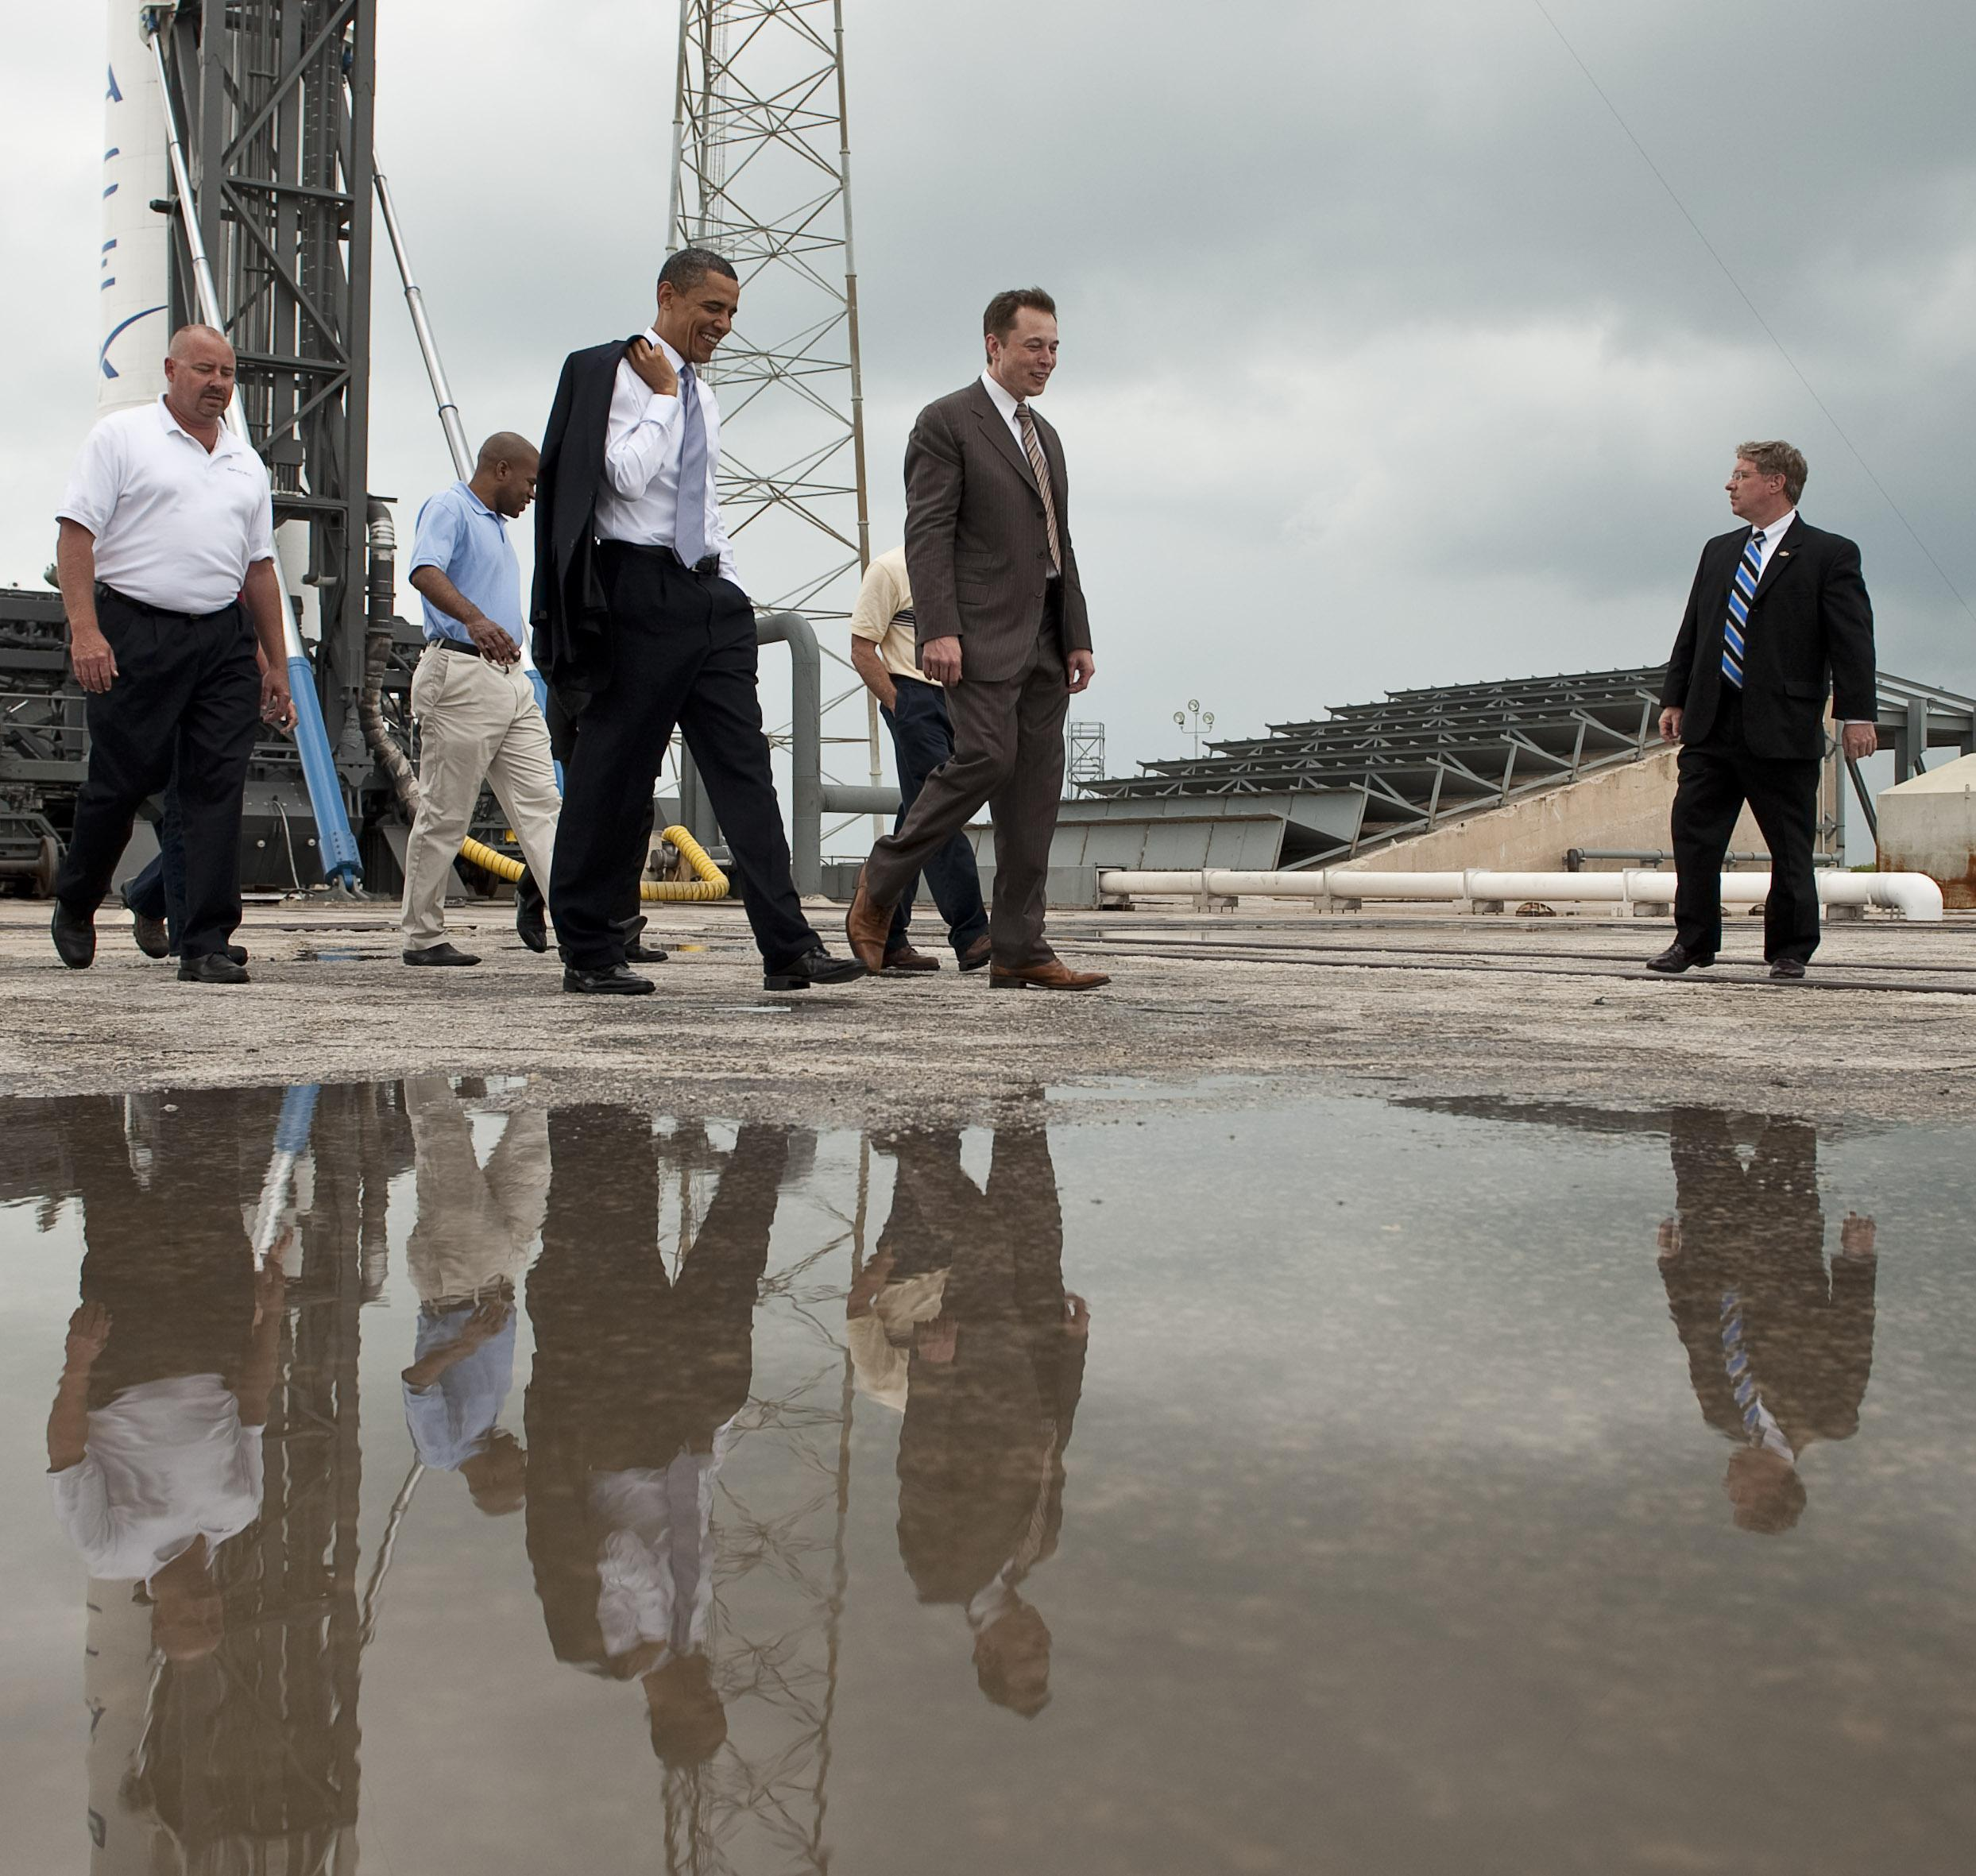 NASA President Tours SpaceX Facility - Cape canaveral tours